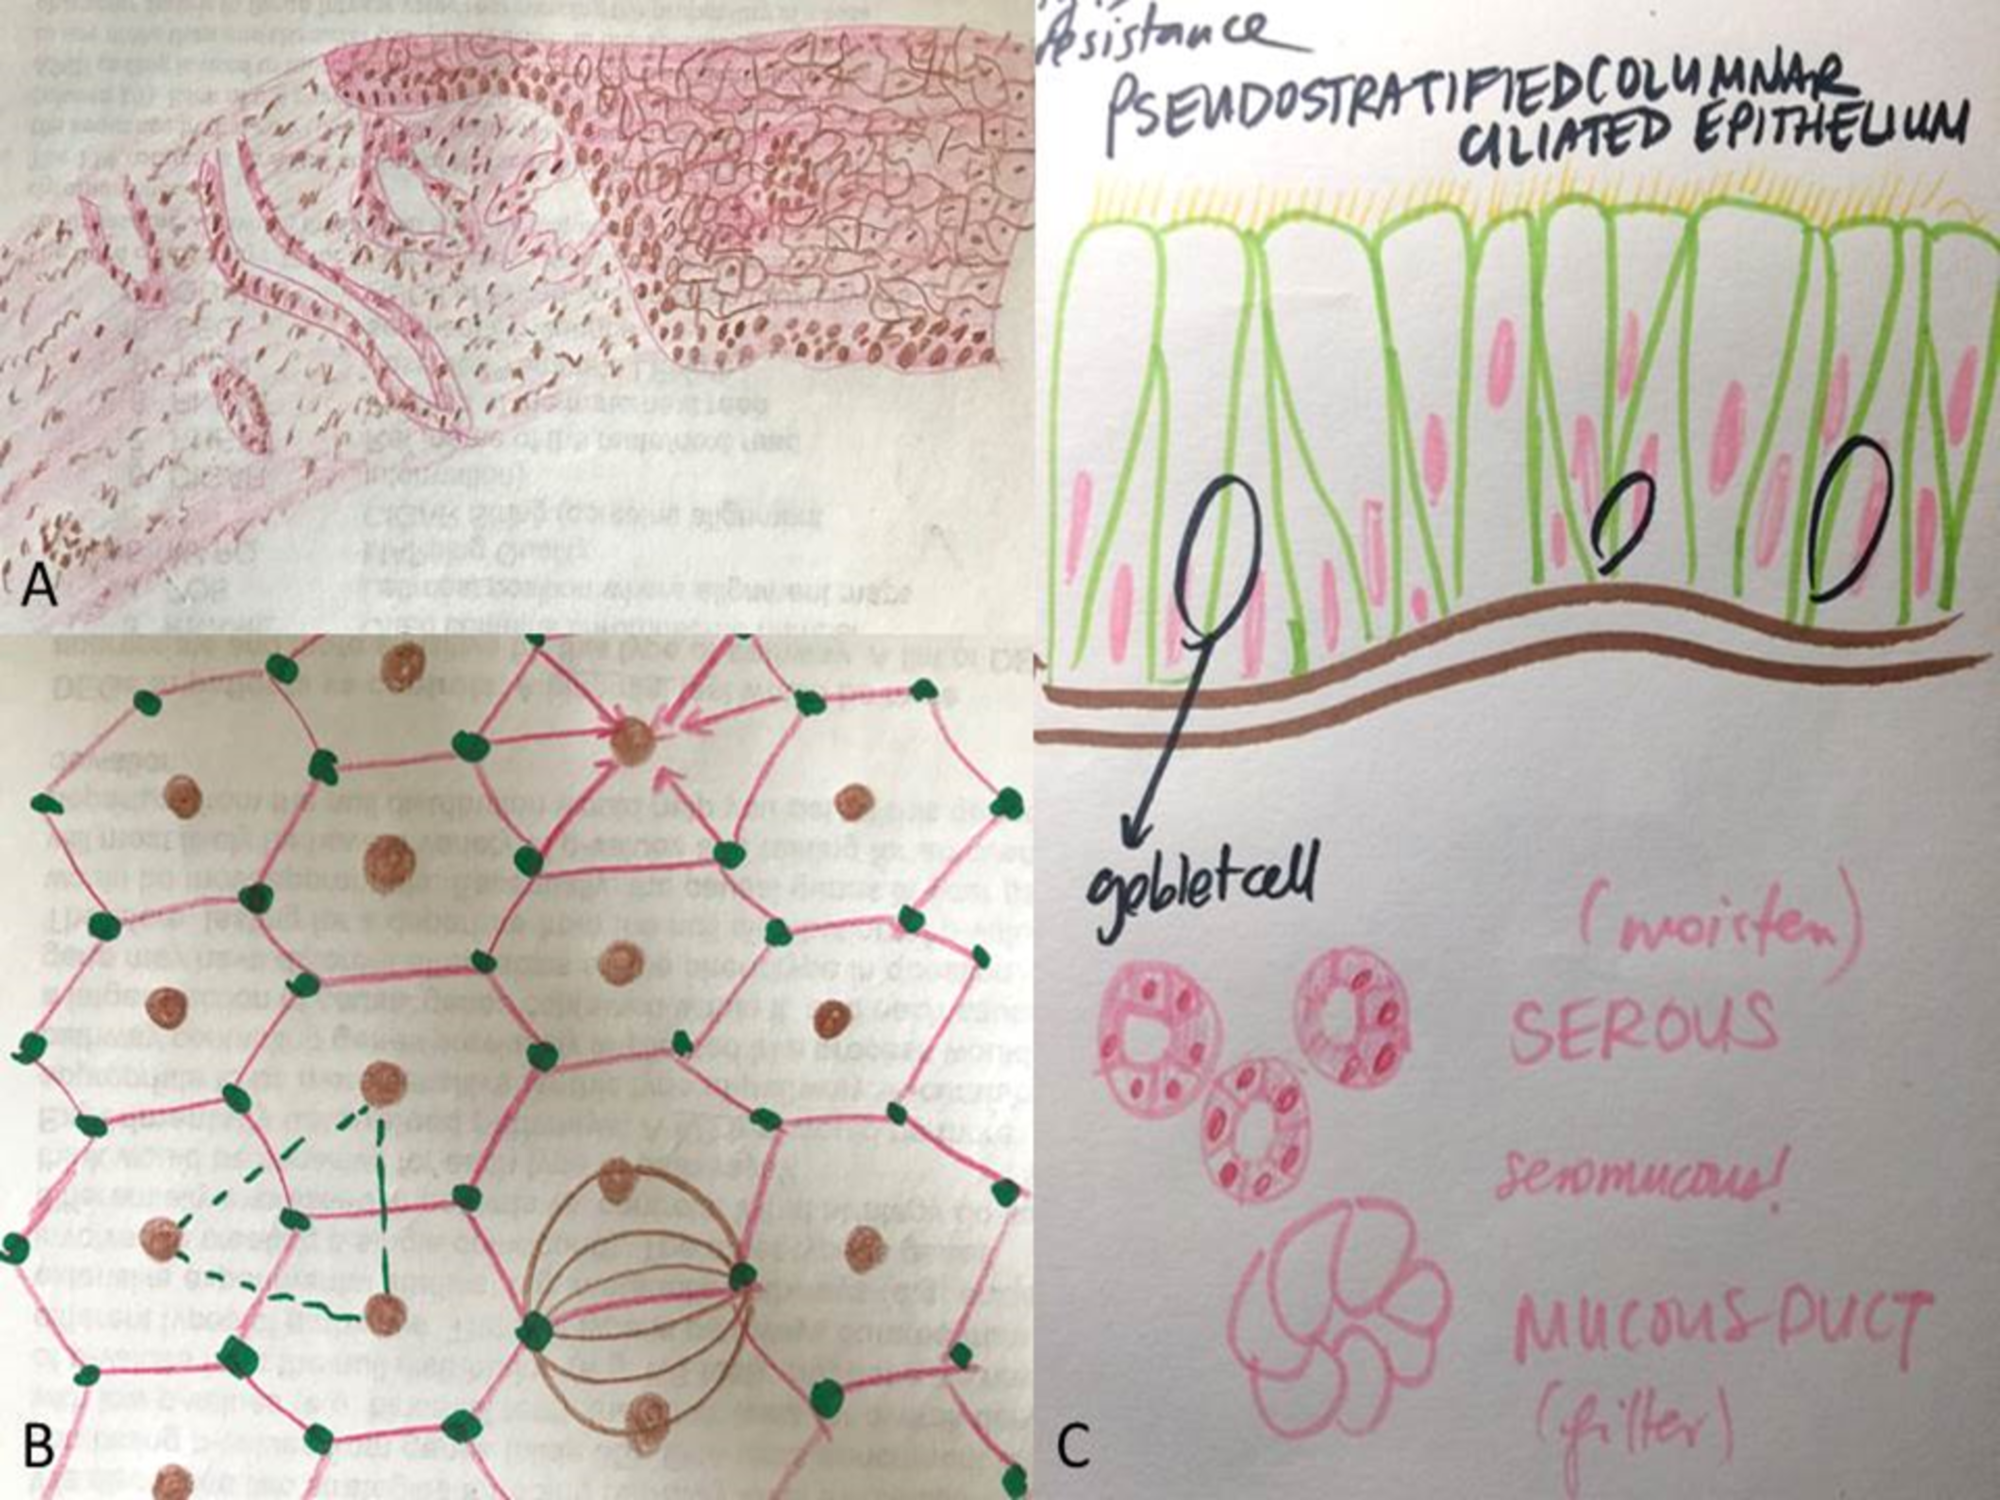 Cureus | Art as a Learning Tool: Medical Student Perspectives on